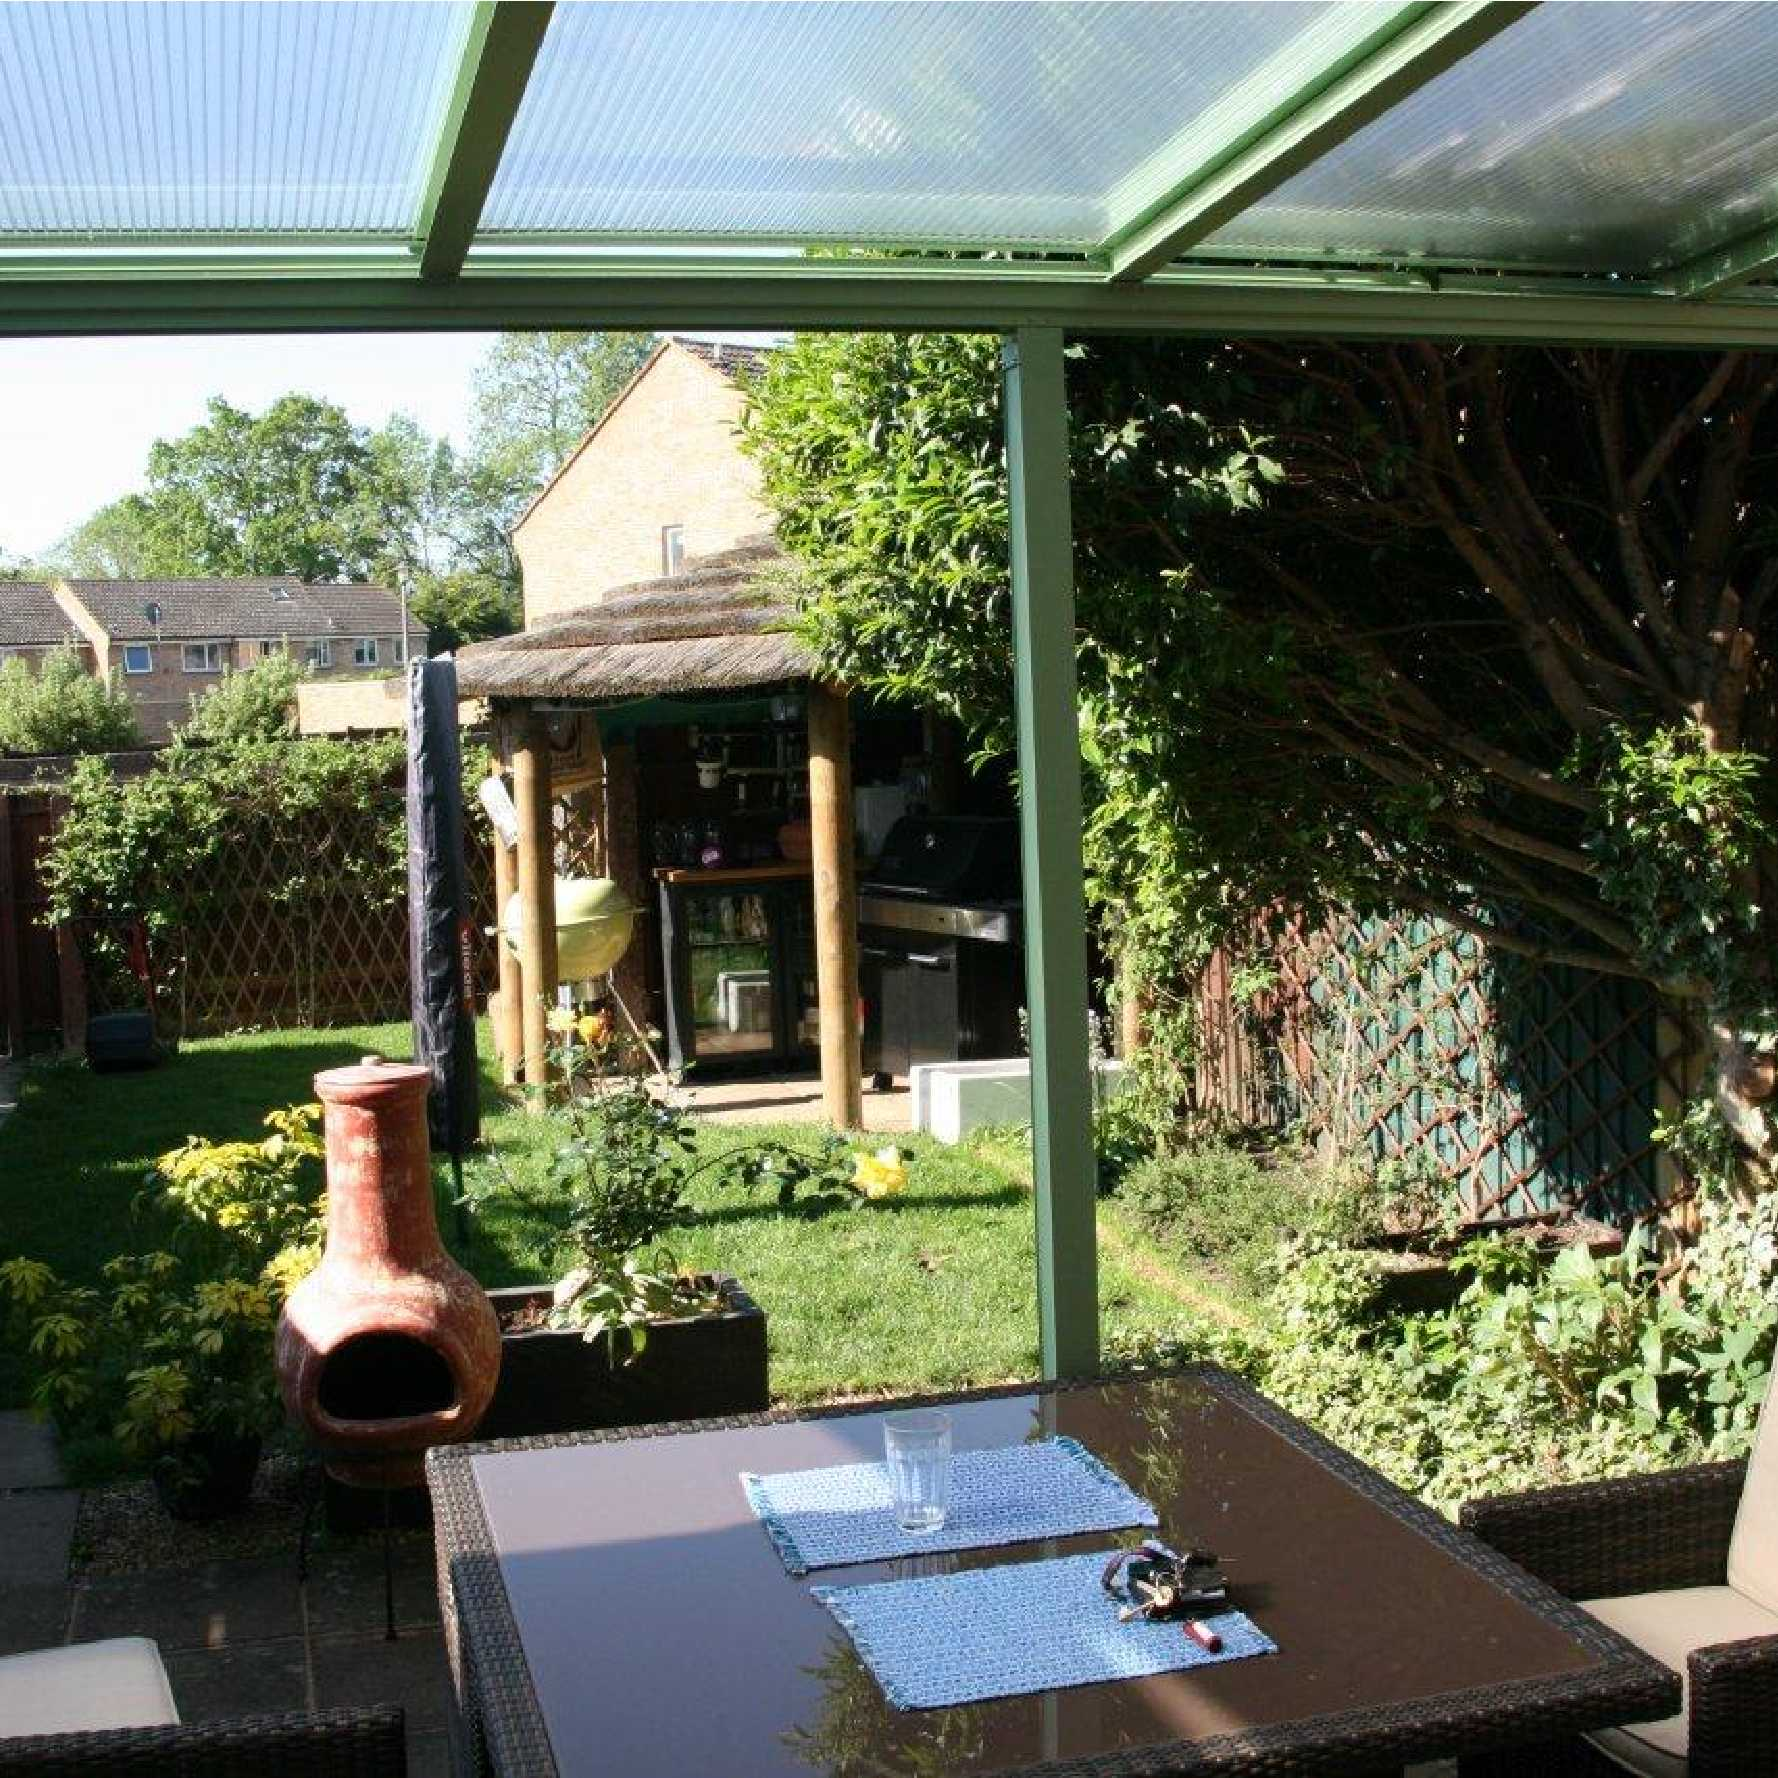 Affordable Omega Smart Lean-To Canopy with 16mm Polycarbonate Glazing - 12.0m (W) x 3.0m (P), (5) Supporting Posts